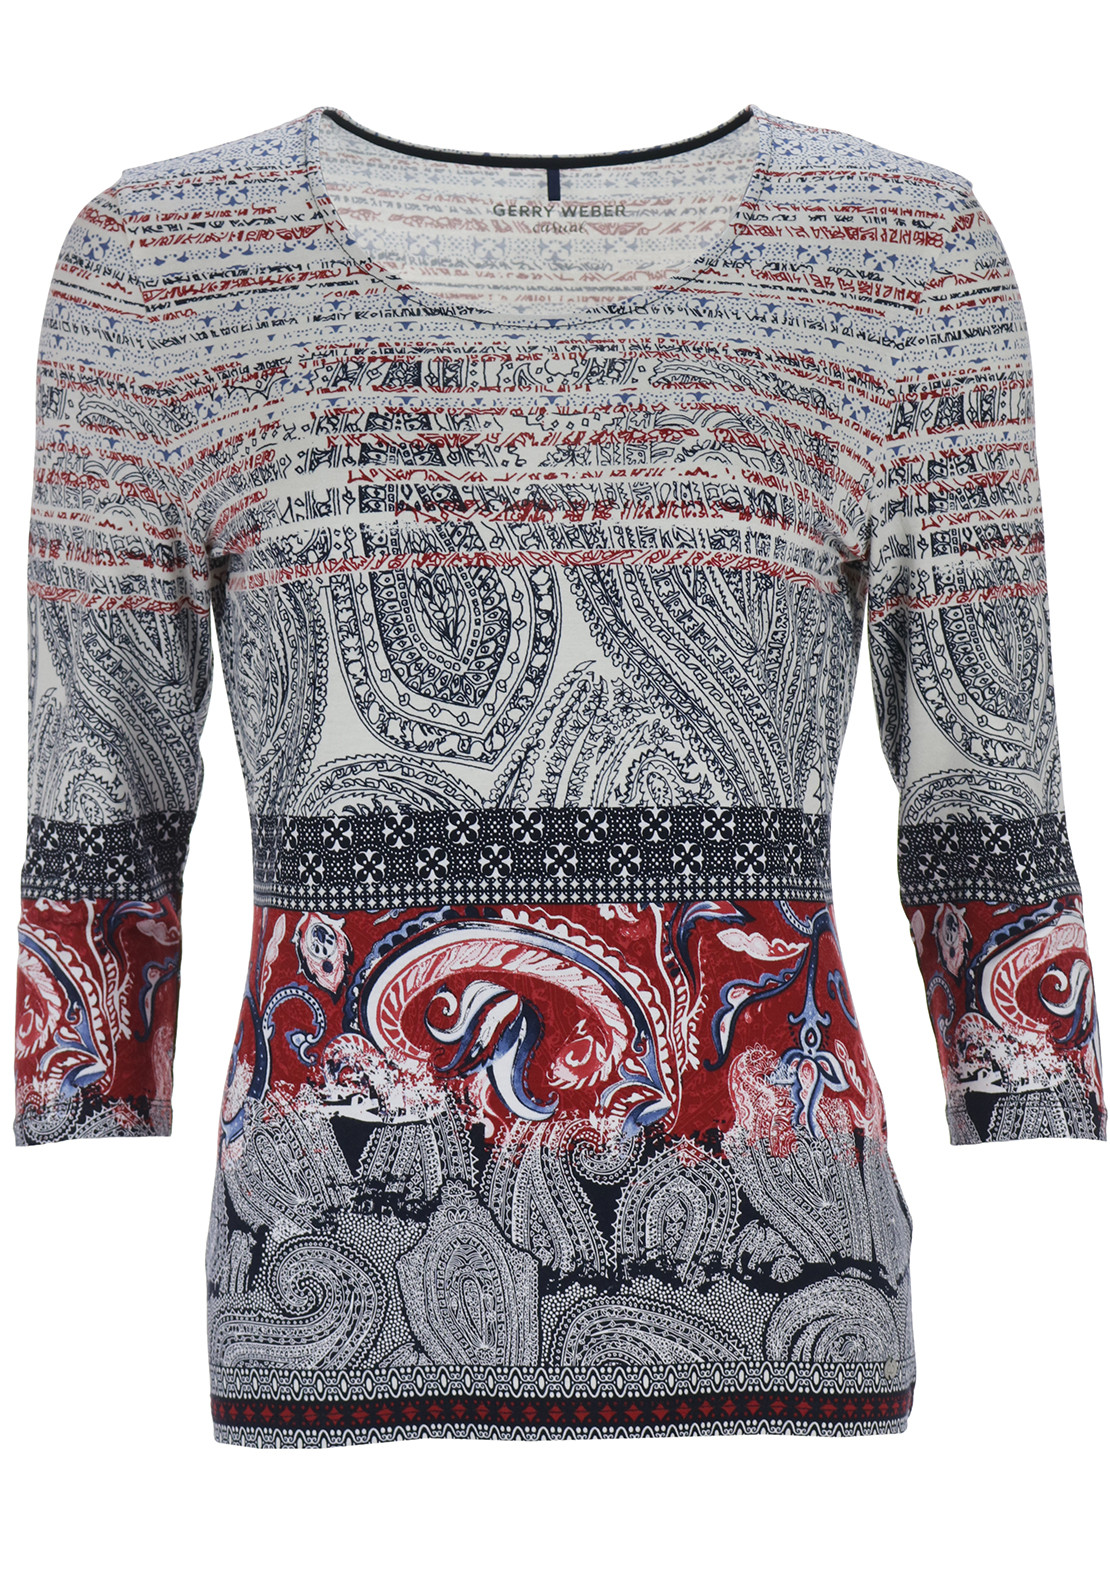 Gerry Weber Paisley Print Top, Multi-Coloured